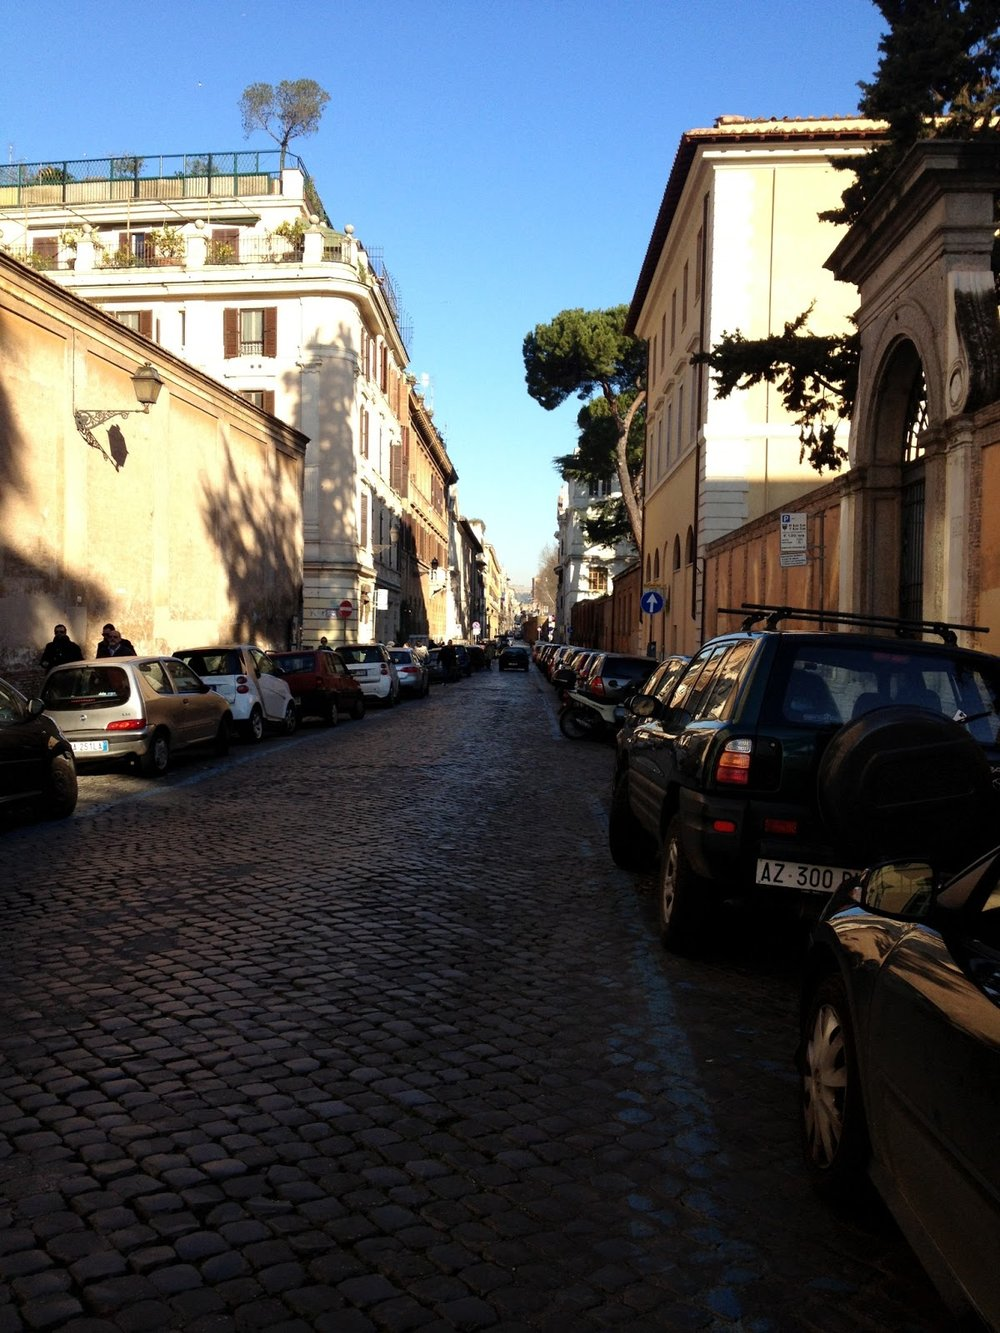 Walking down Via della Lungara toward St. Peter's to see the pope's final appearance